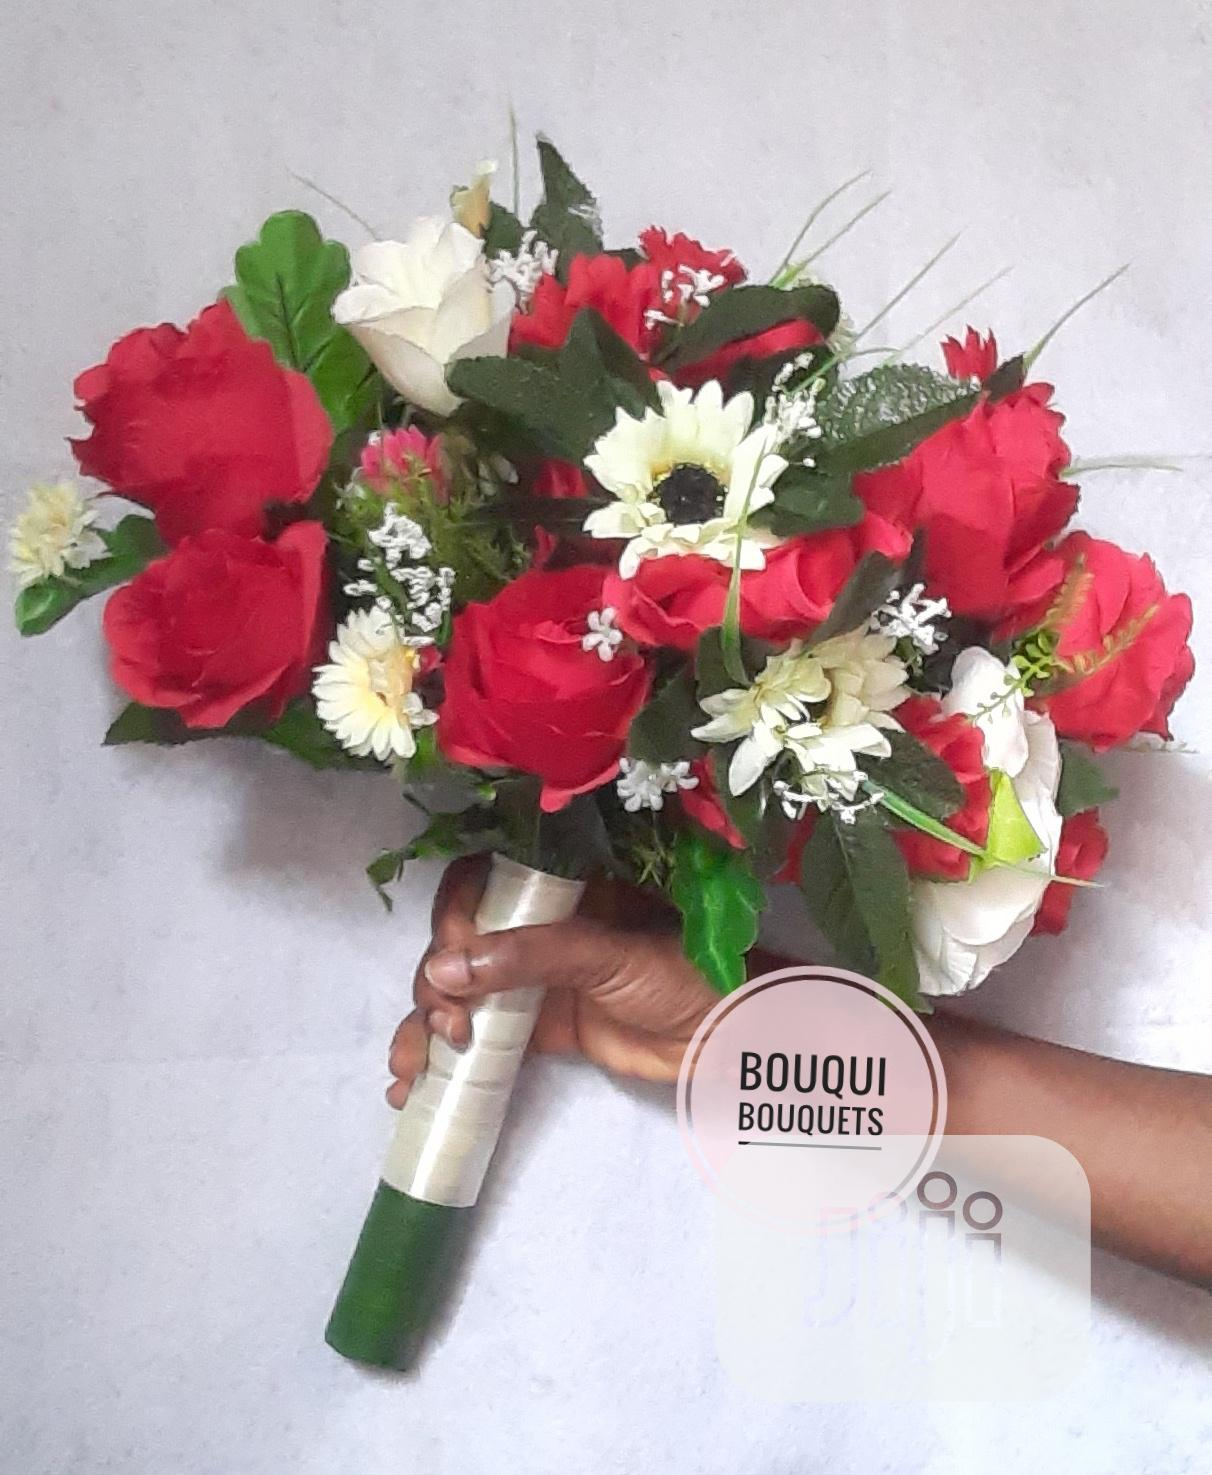 Bridal Bouquets | Wedding Wear & Accessories for sale in Asokoro, Abuja (FCT) State, Nigeria